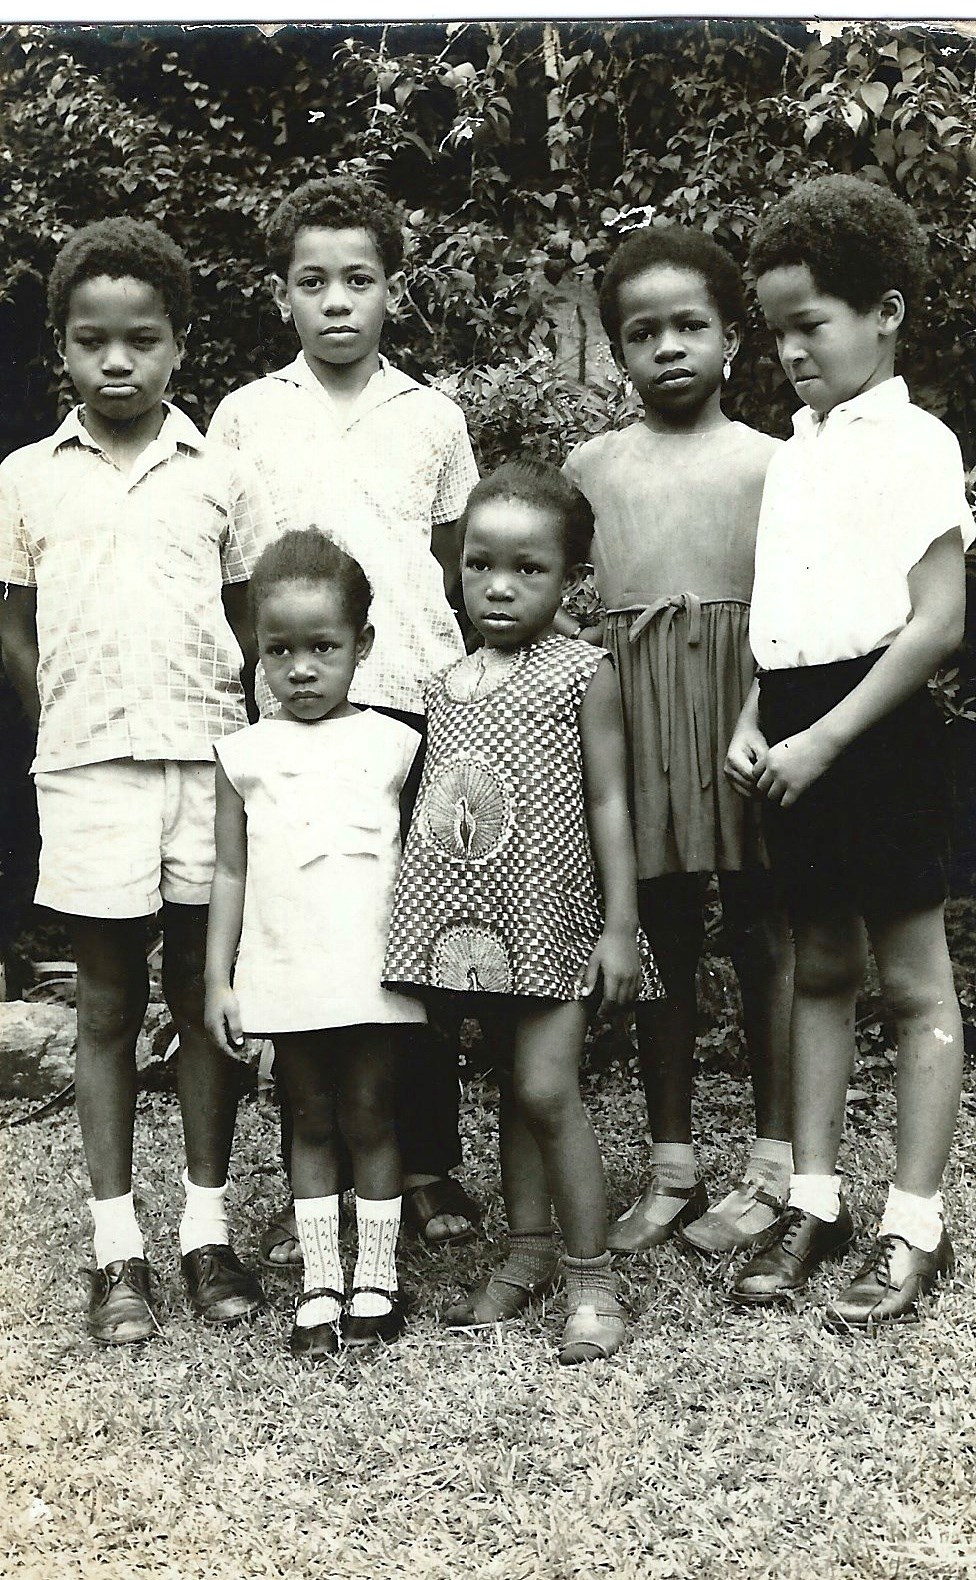 Soyinka and Kuti kids looking like mischief (Iyetade front right)